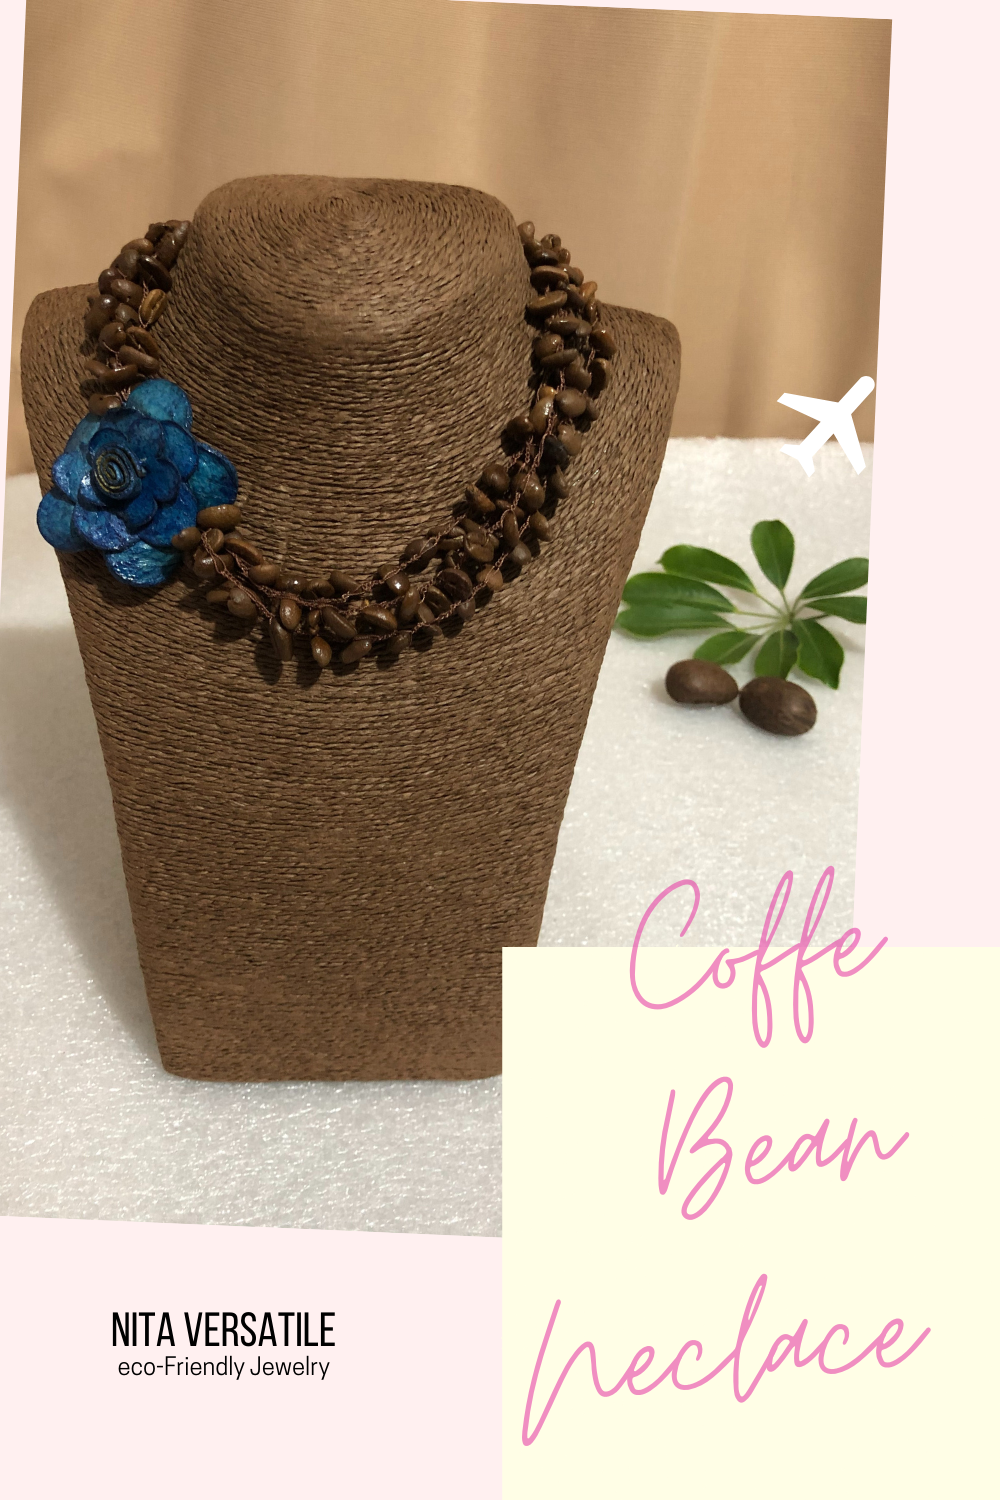 An Eco Friendly Aromatic Coffee Bean Necklace Check Out Our New Handcracted Collection Ecofri In 2020 Eco Friendly Jewelry Handmade Jewelry Handcrafted Necklace